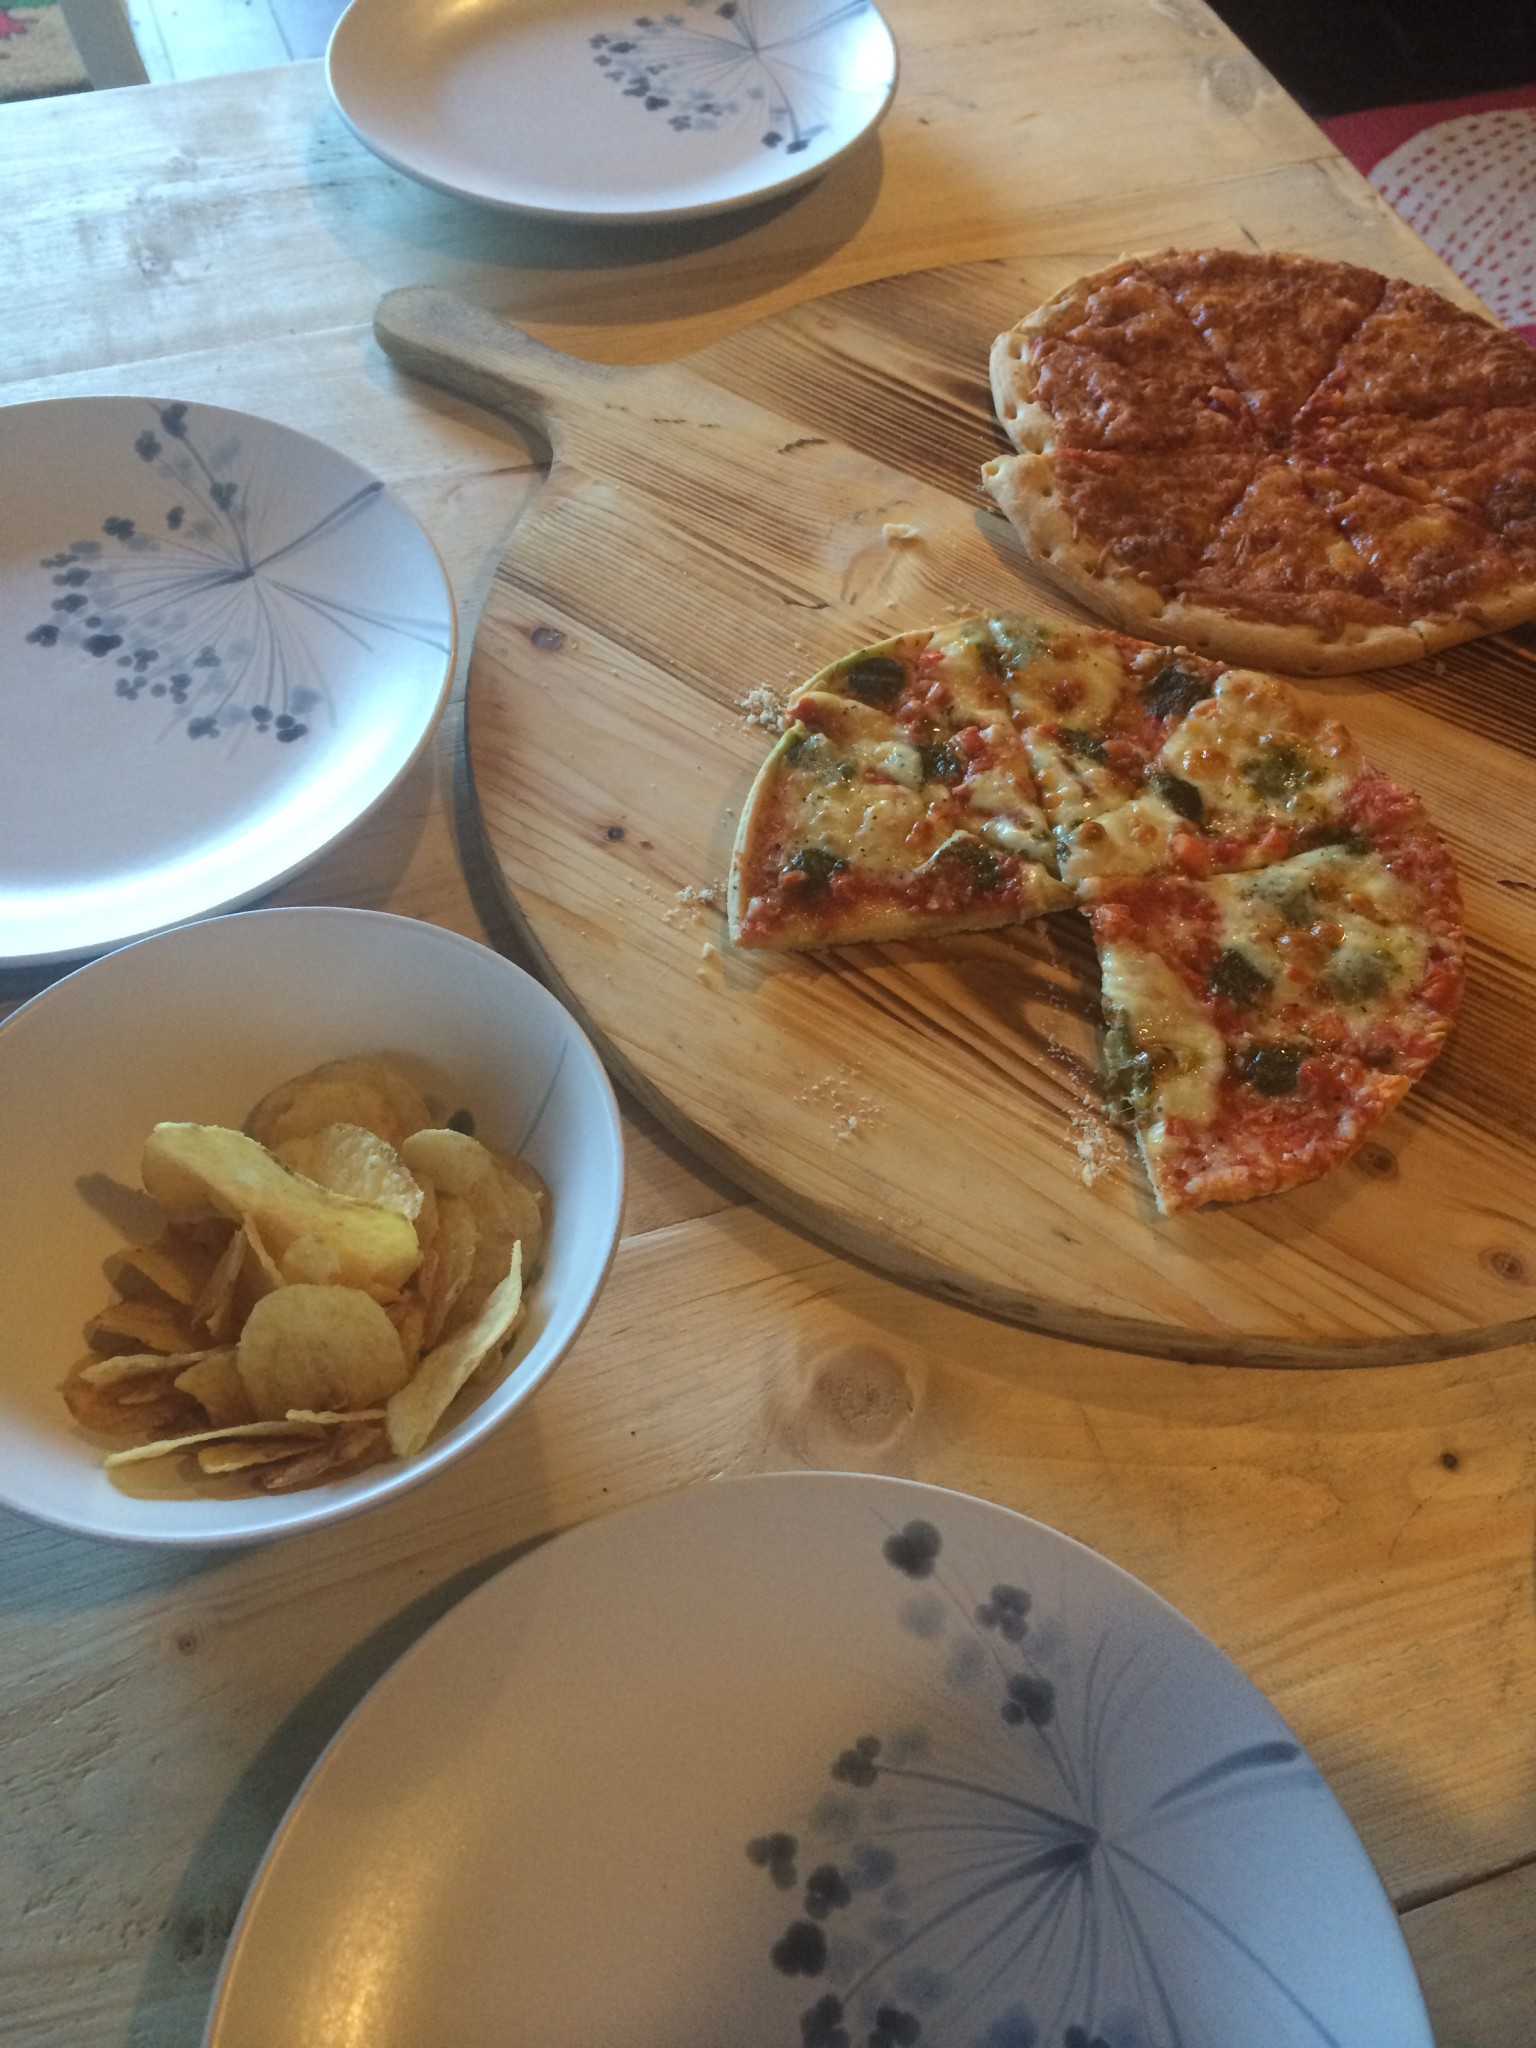 Our pizza dinner at drovers rest glamping site